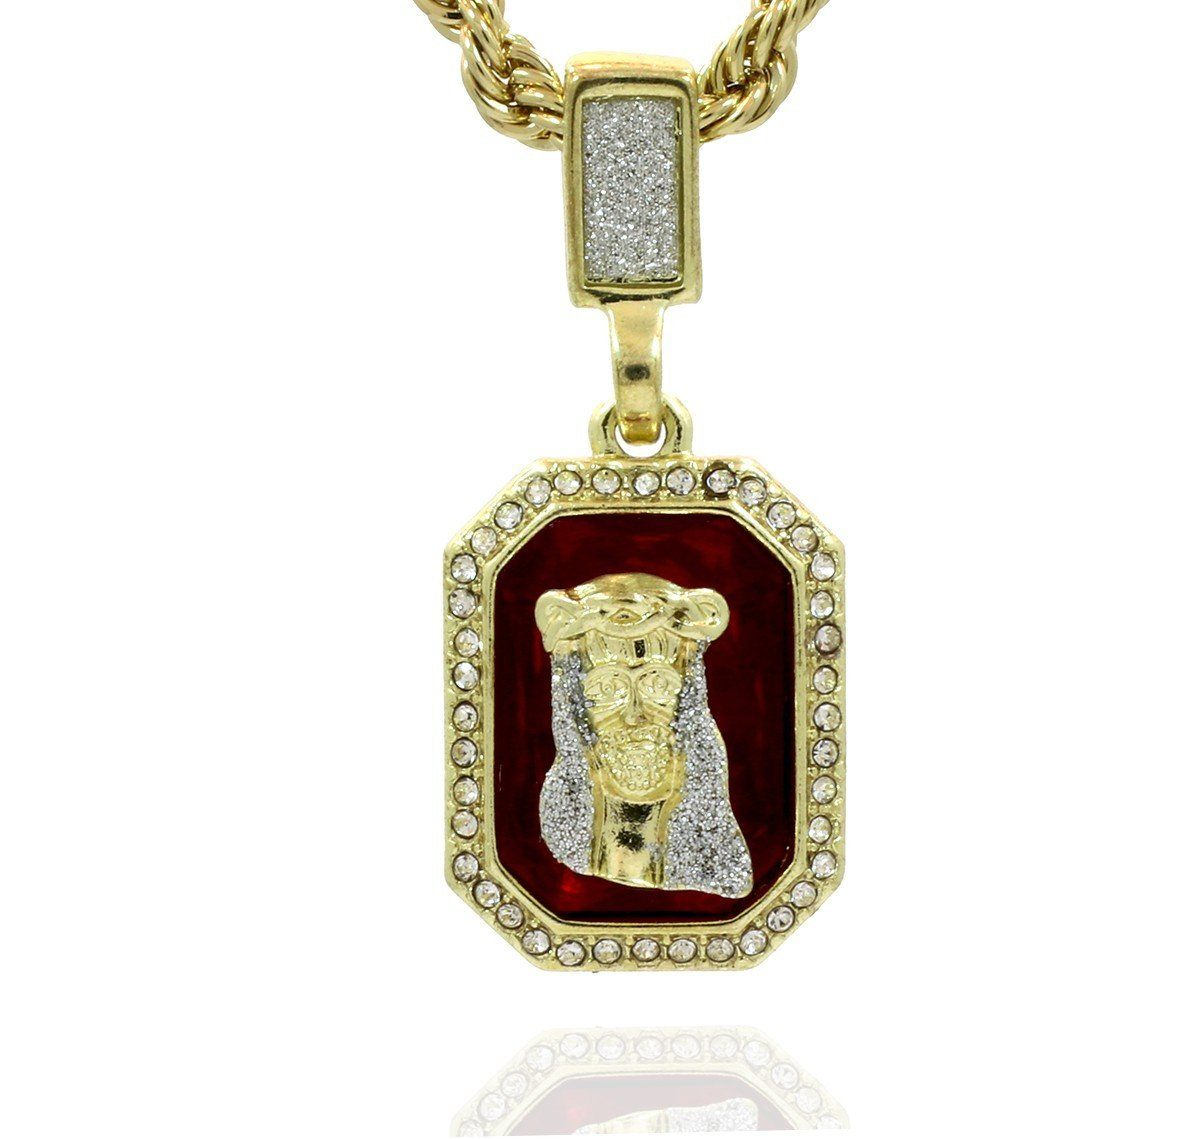 RUBY JESUS PENDANT WITH GOLD ROPE CHAIN